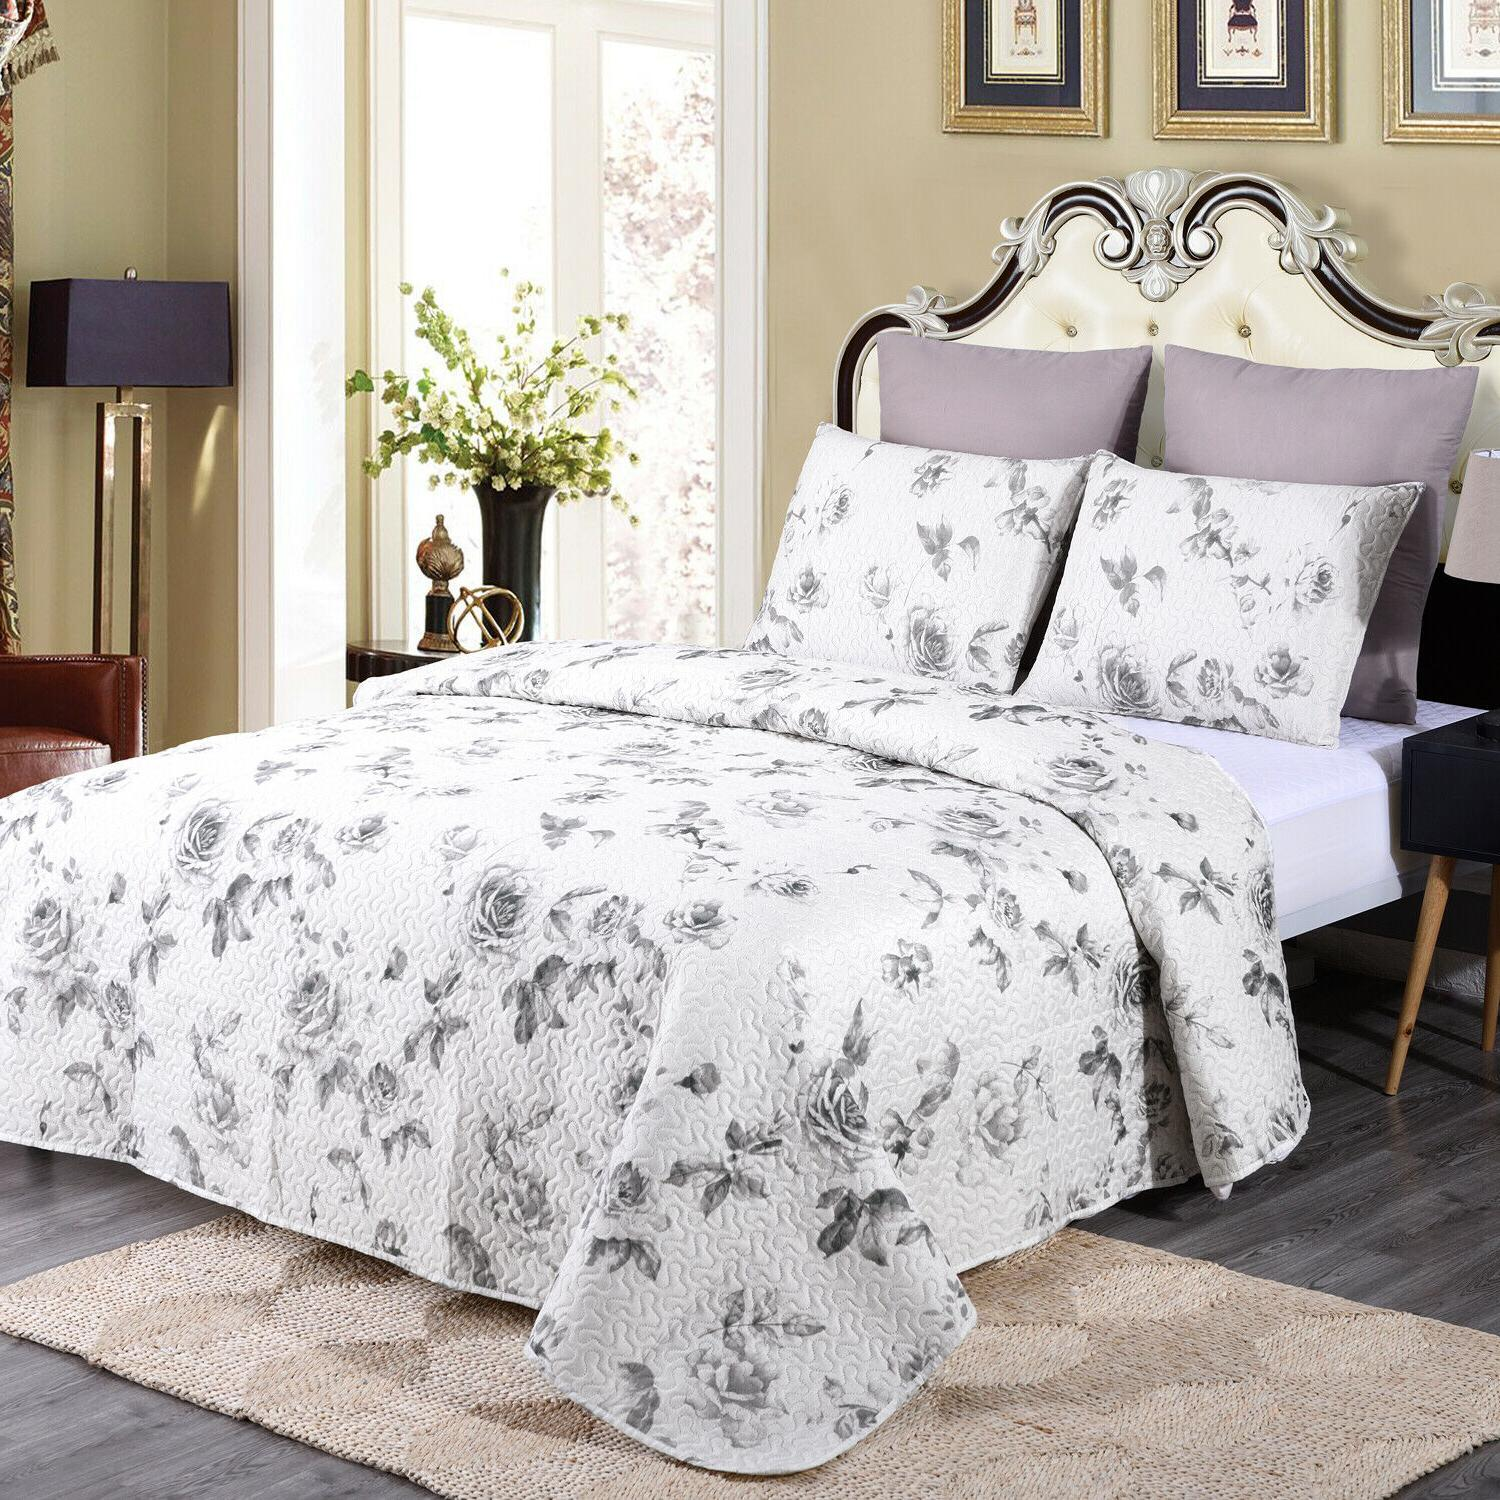 3 Piece Printed Reversible Bedding Quilt Set-Queem, White an